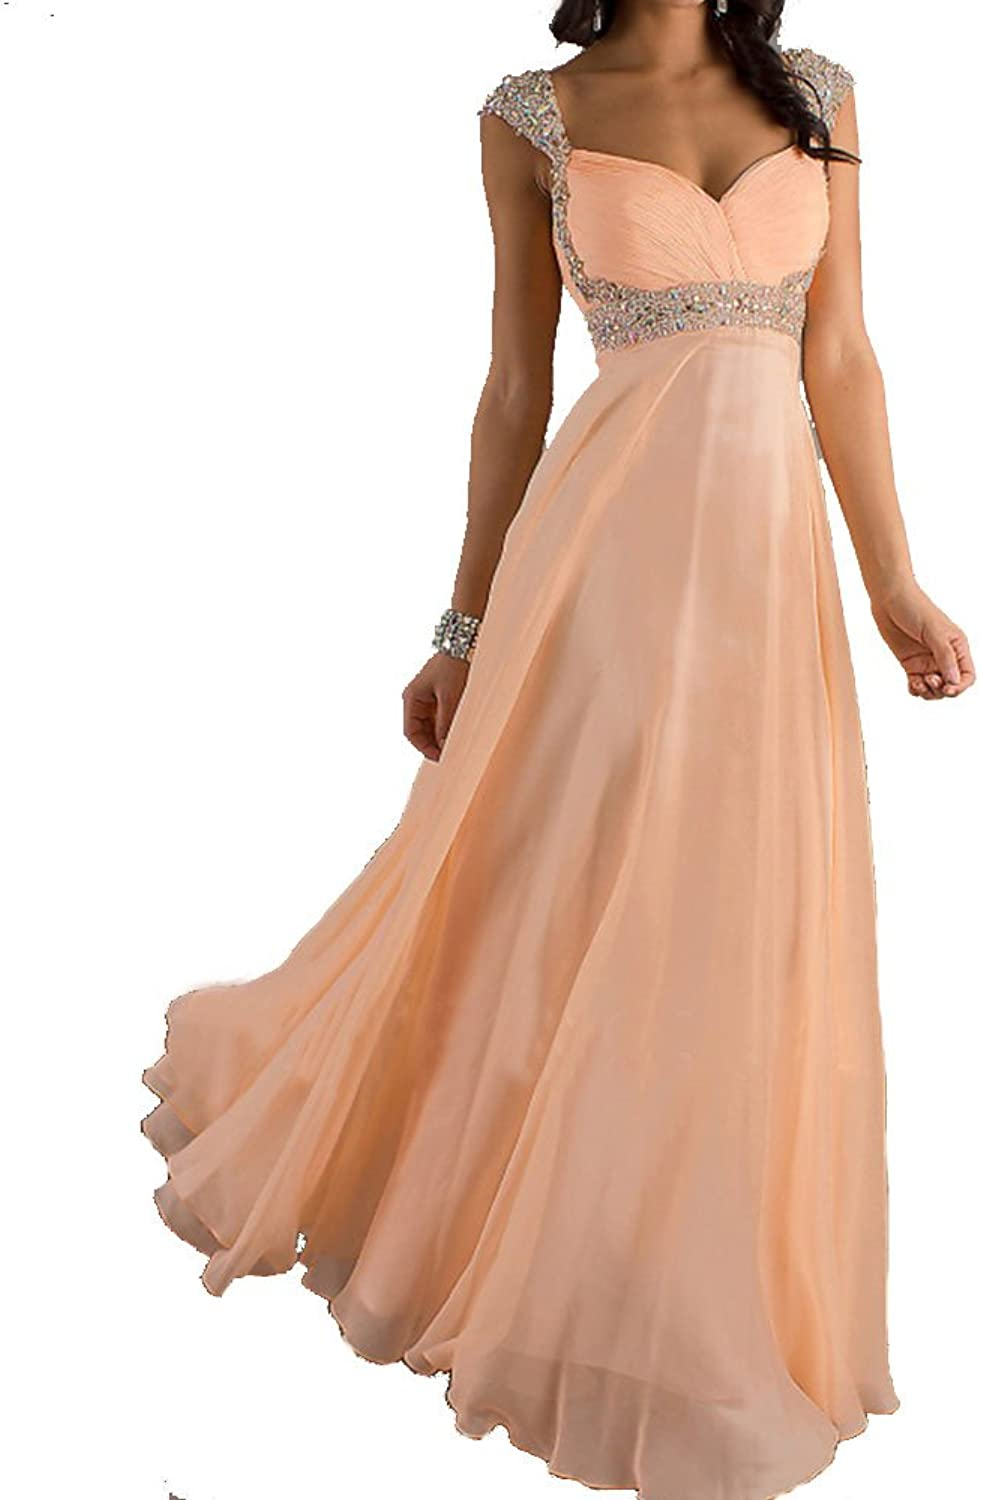 Kissprom Peach Cap Sleeves Long Prom Dresses Graduation Party Dresses with Empire Waist for Women